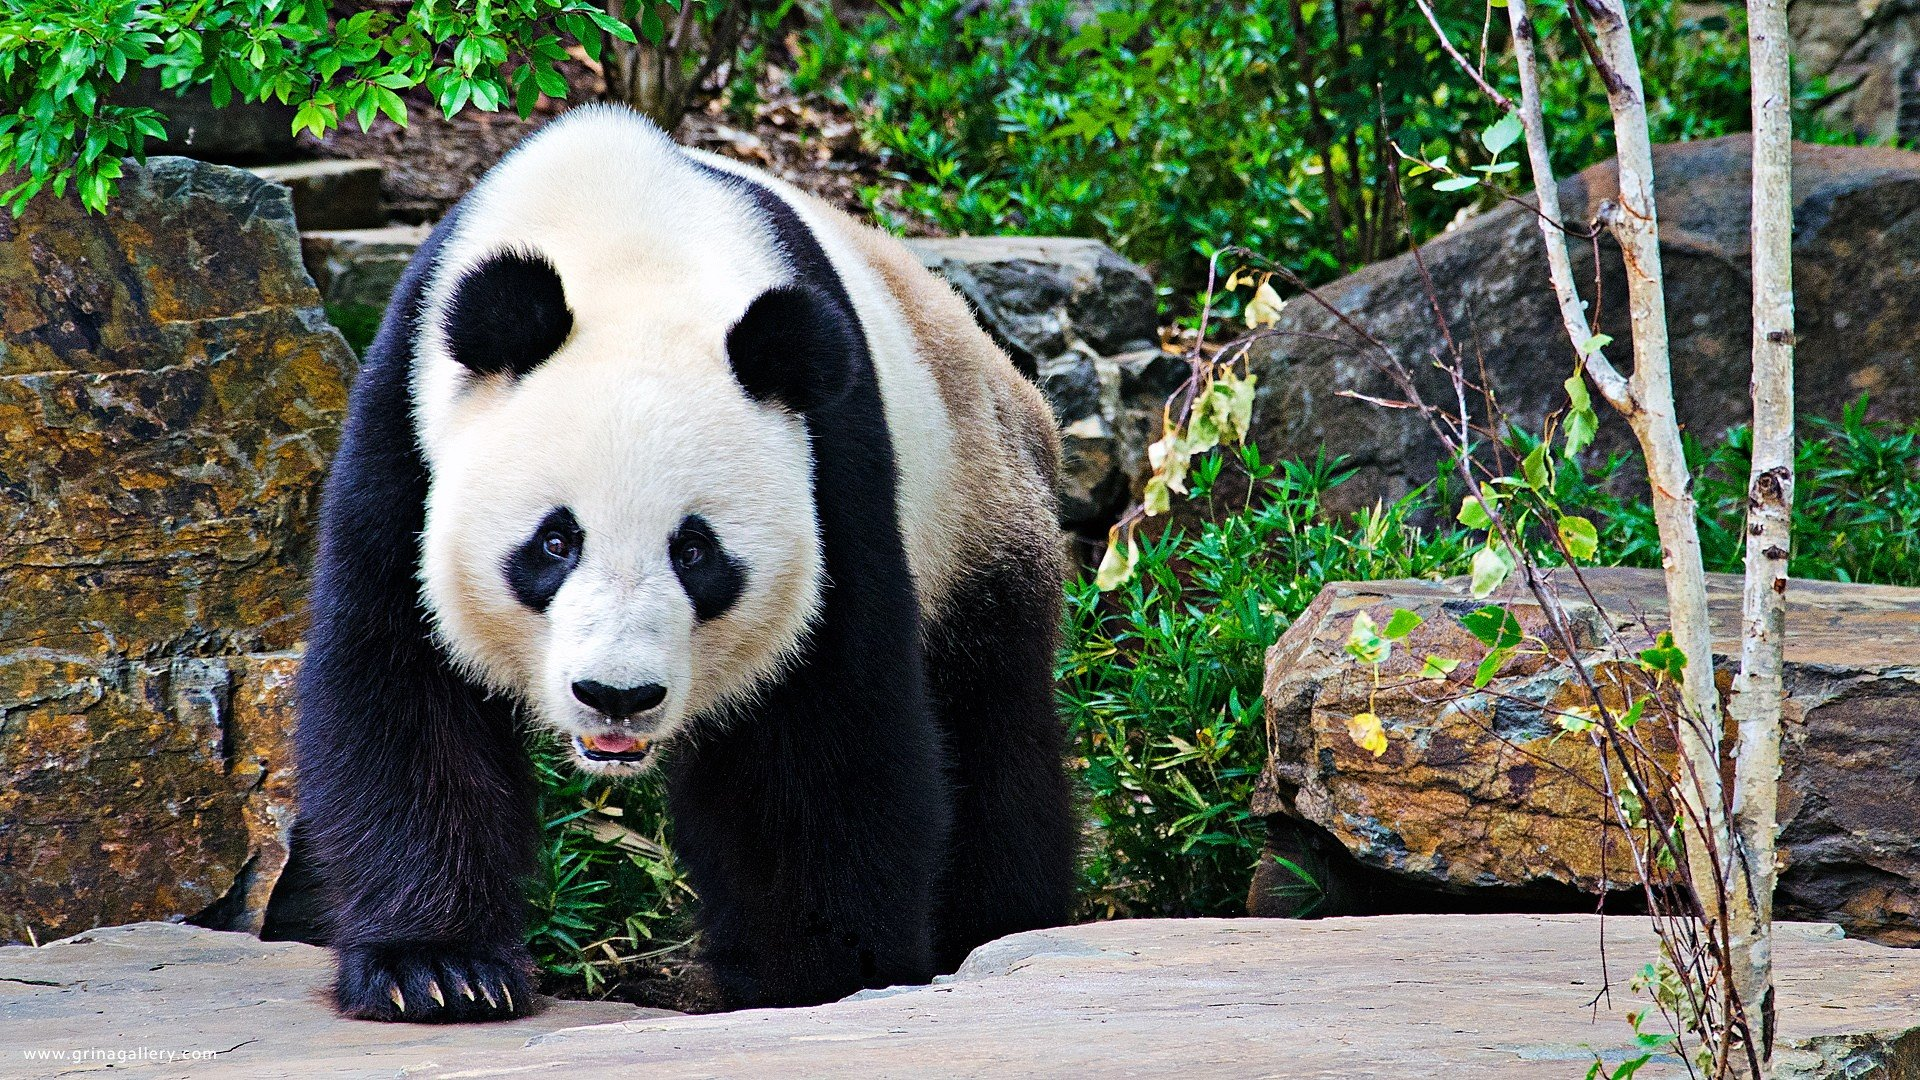 Download full hd 1080p Panda PC background ID:300452 for free